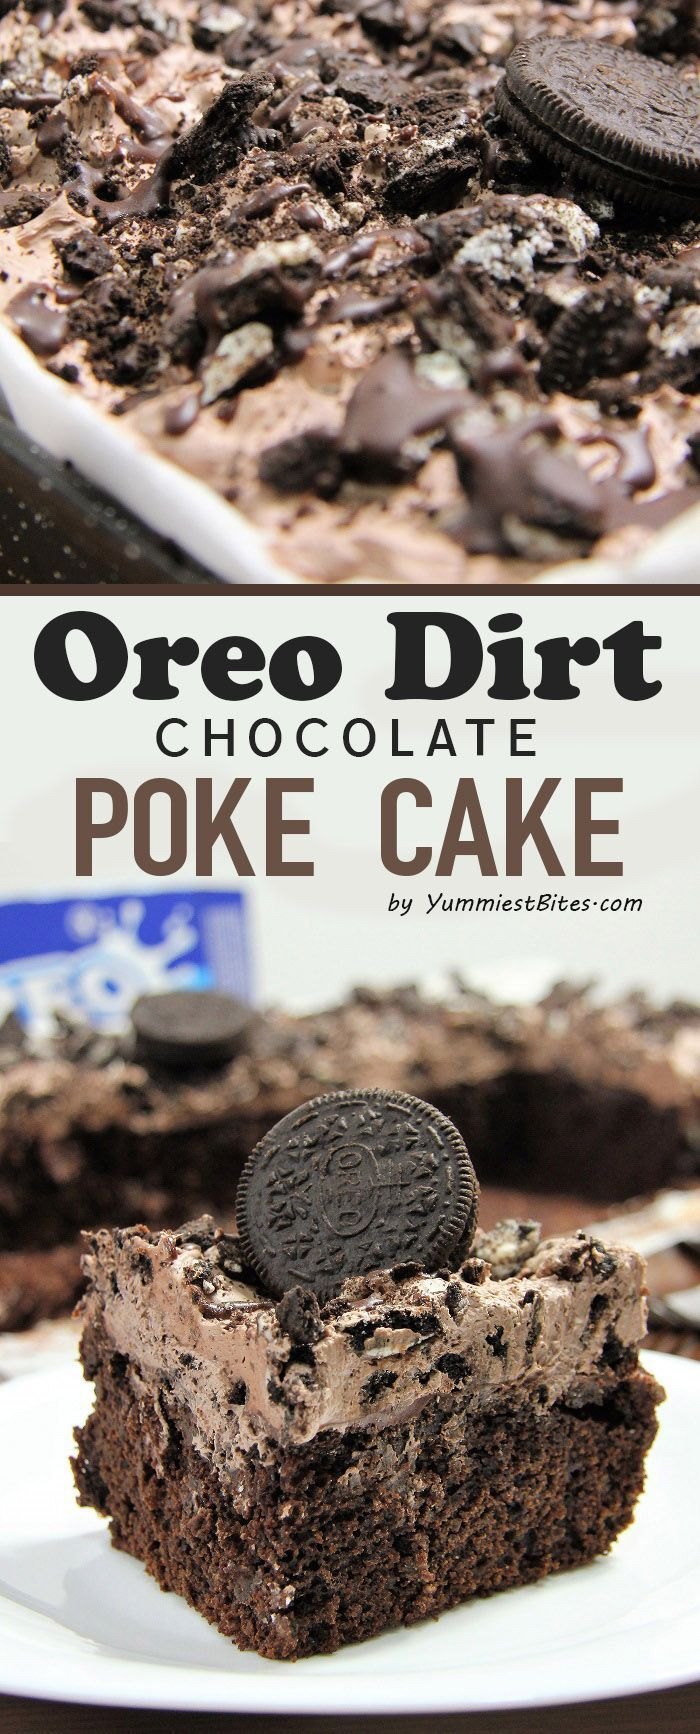 Special poke cake with a perfect chocolate mousse and crushed Oreo dirt can make your weekend mmm� As you take bite the cake is melting in your mouth like an ice cream filled with crumbs of heaven and a dirt of hell. All the good and all the bad came toge